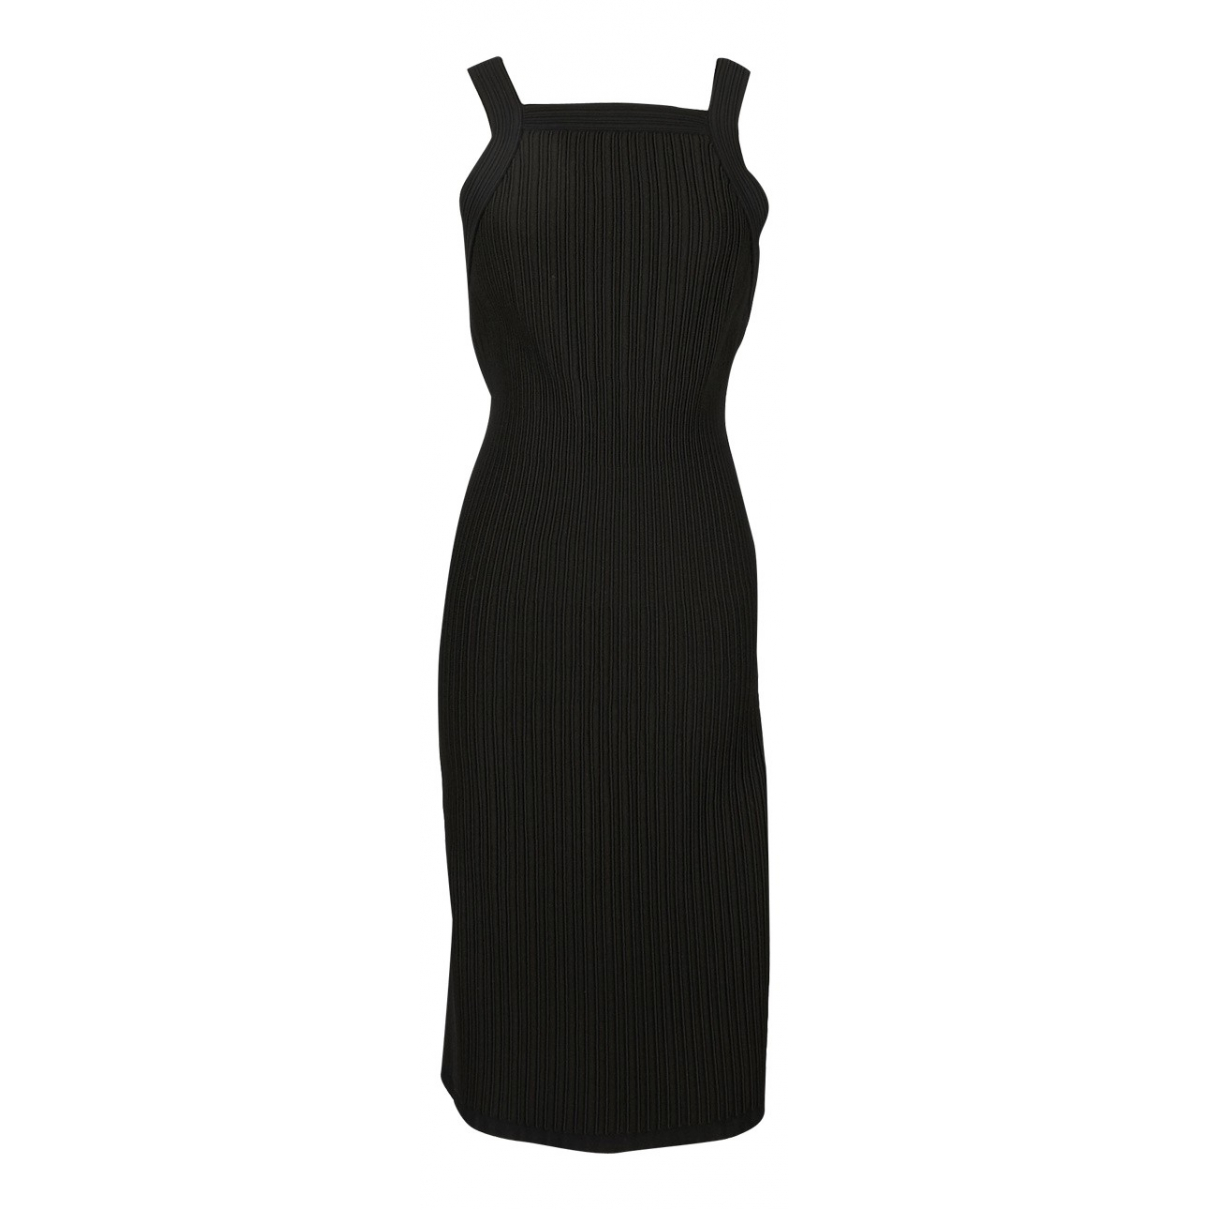 Alaïa \N Black dress for Women M International